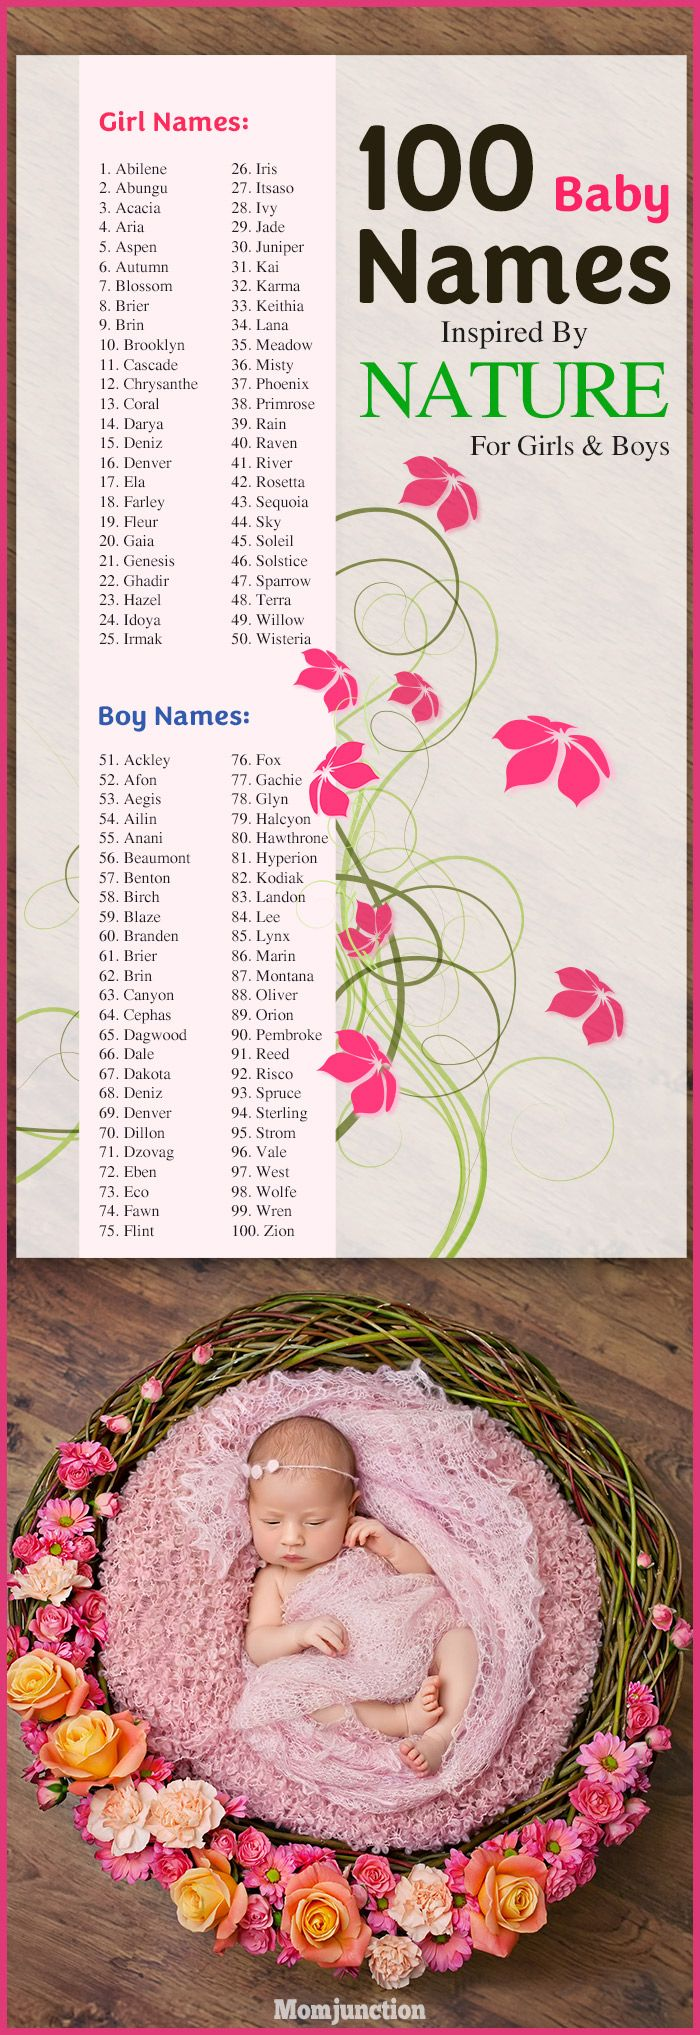 MomJunction has compiled 100 wondrous nature baby names for you. Each one comes with a beautiful meaning and reflects the beauty of nature. Check them out!